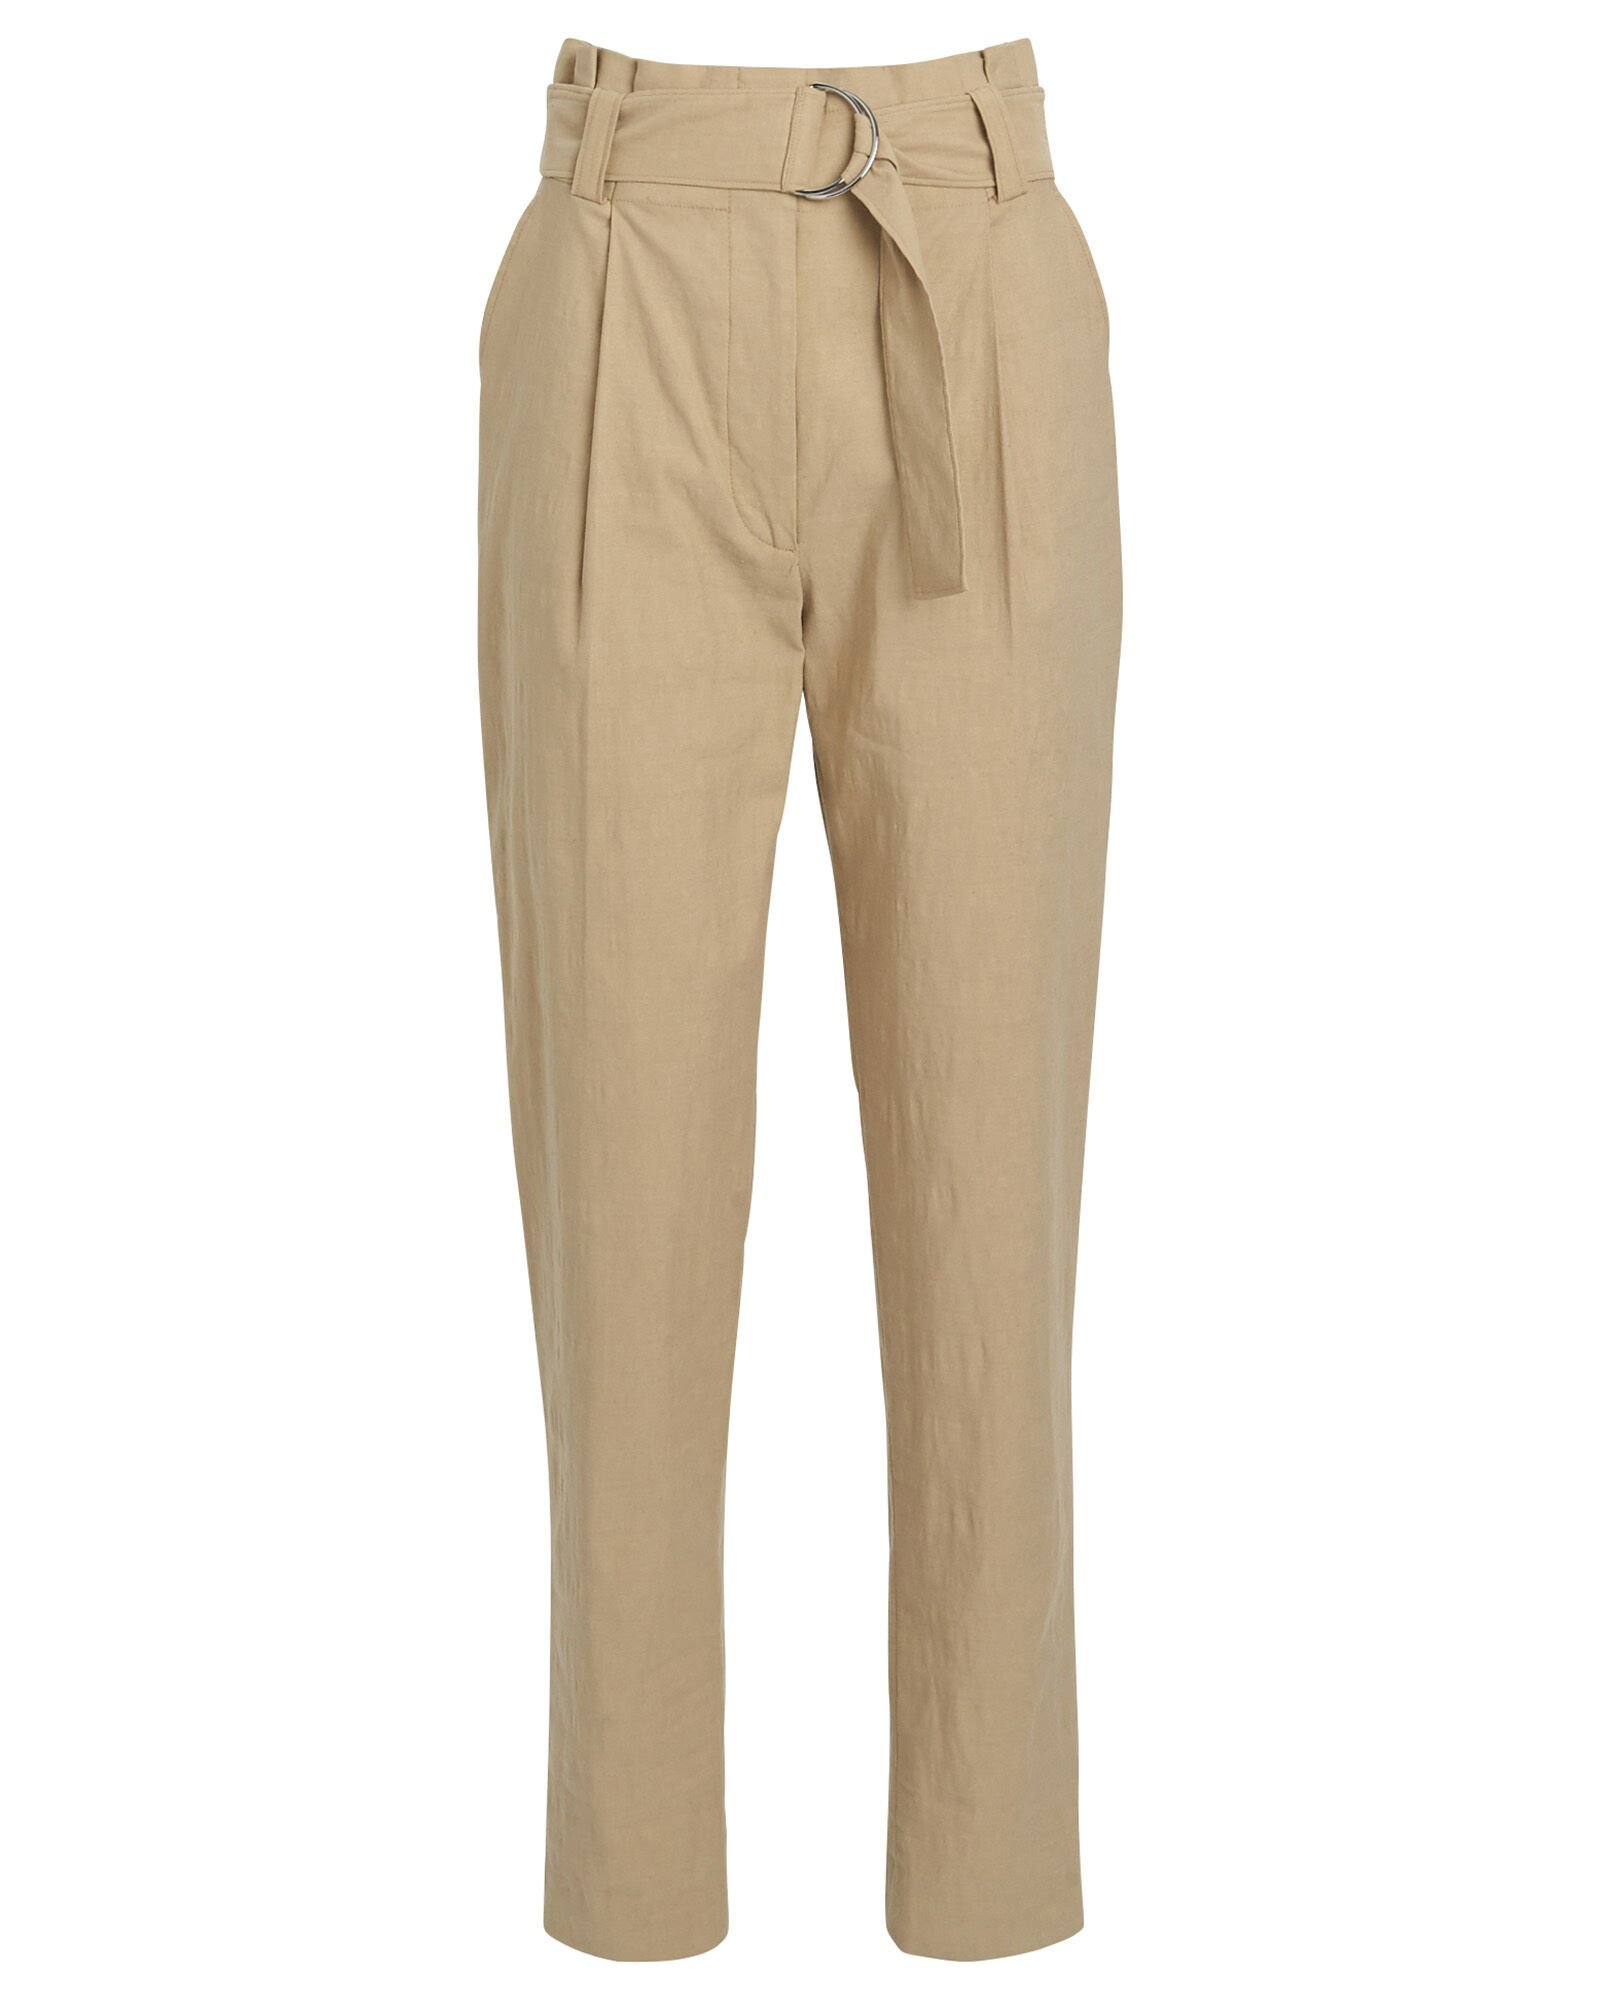 Diego Tapered Paperbag Trousers, KHAKI, hi-res